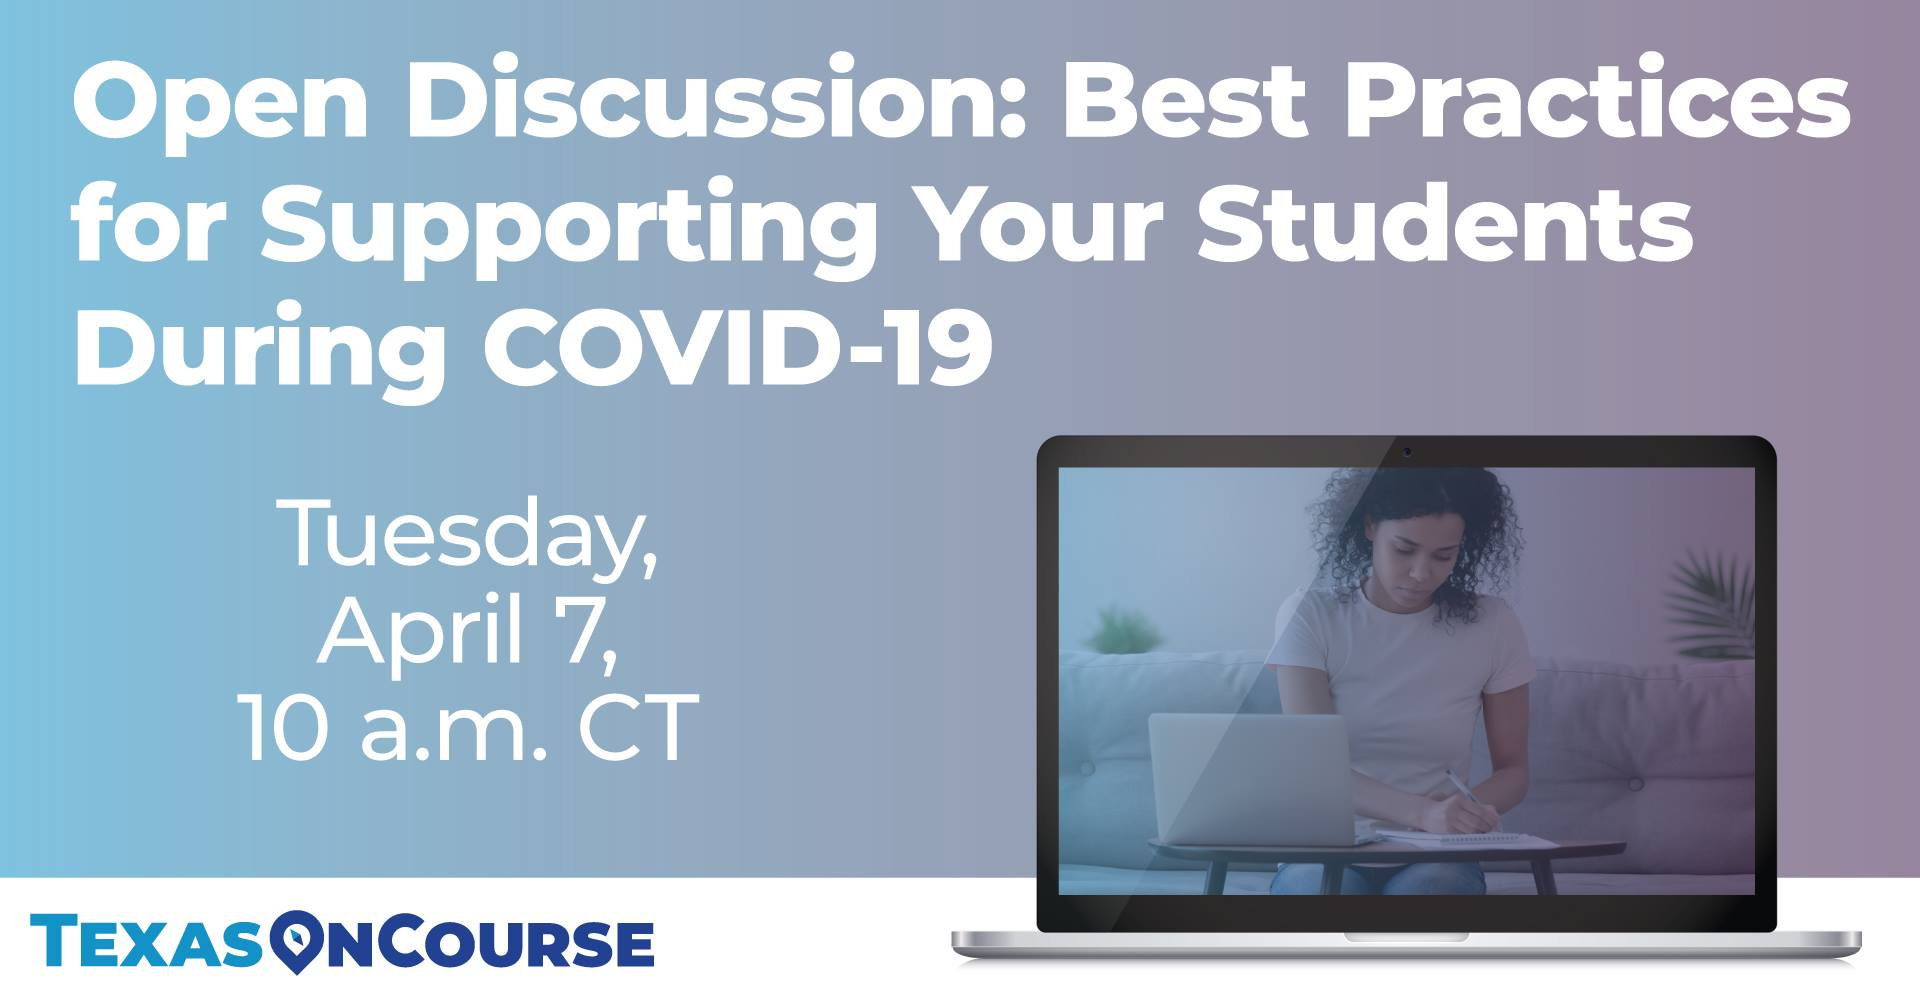 Open Discussion: Best Practices in Supporting Your Students During COVID-19